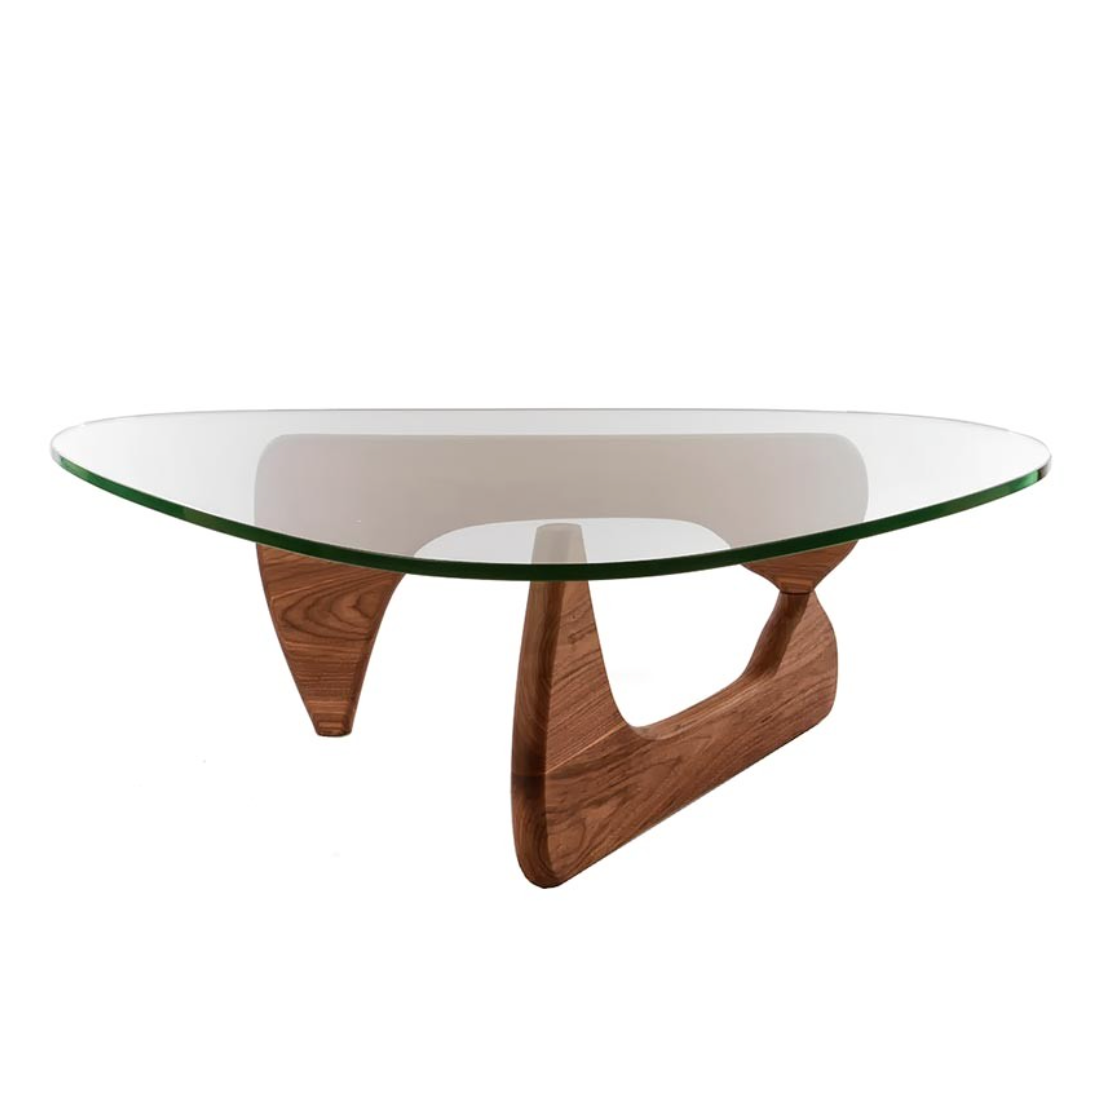 Noguchi coffee table mikaza meubles modernes montreal modern furniture ottawa Furniture coffee tables